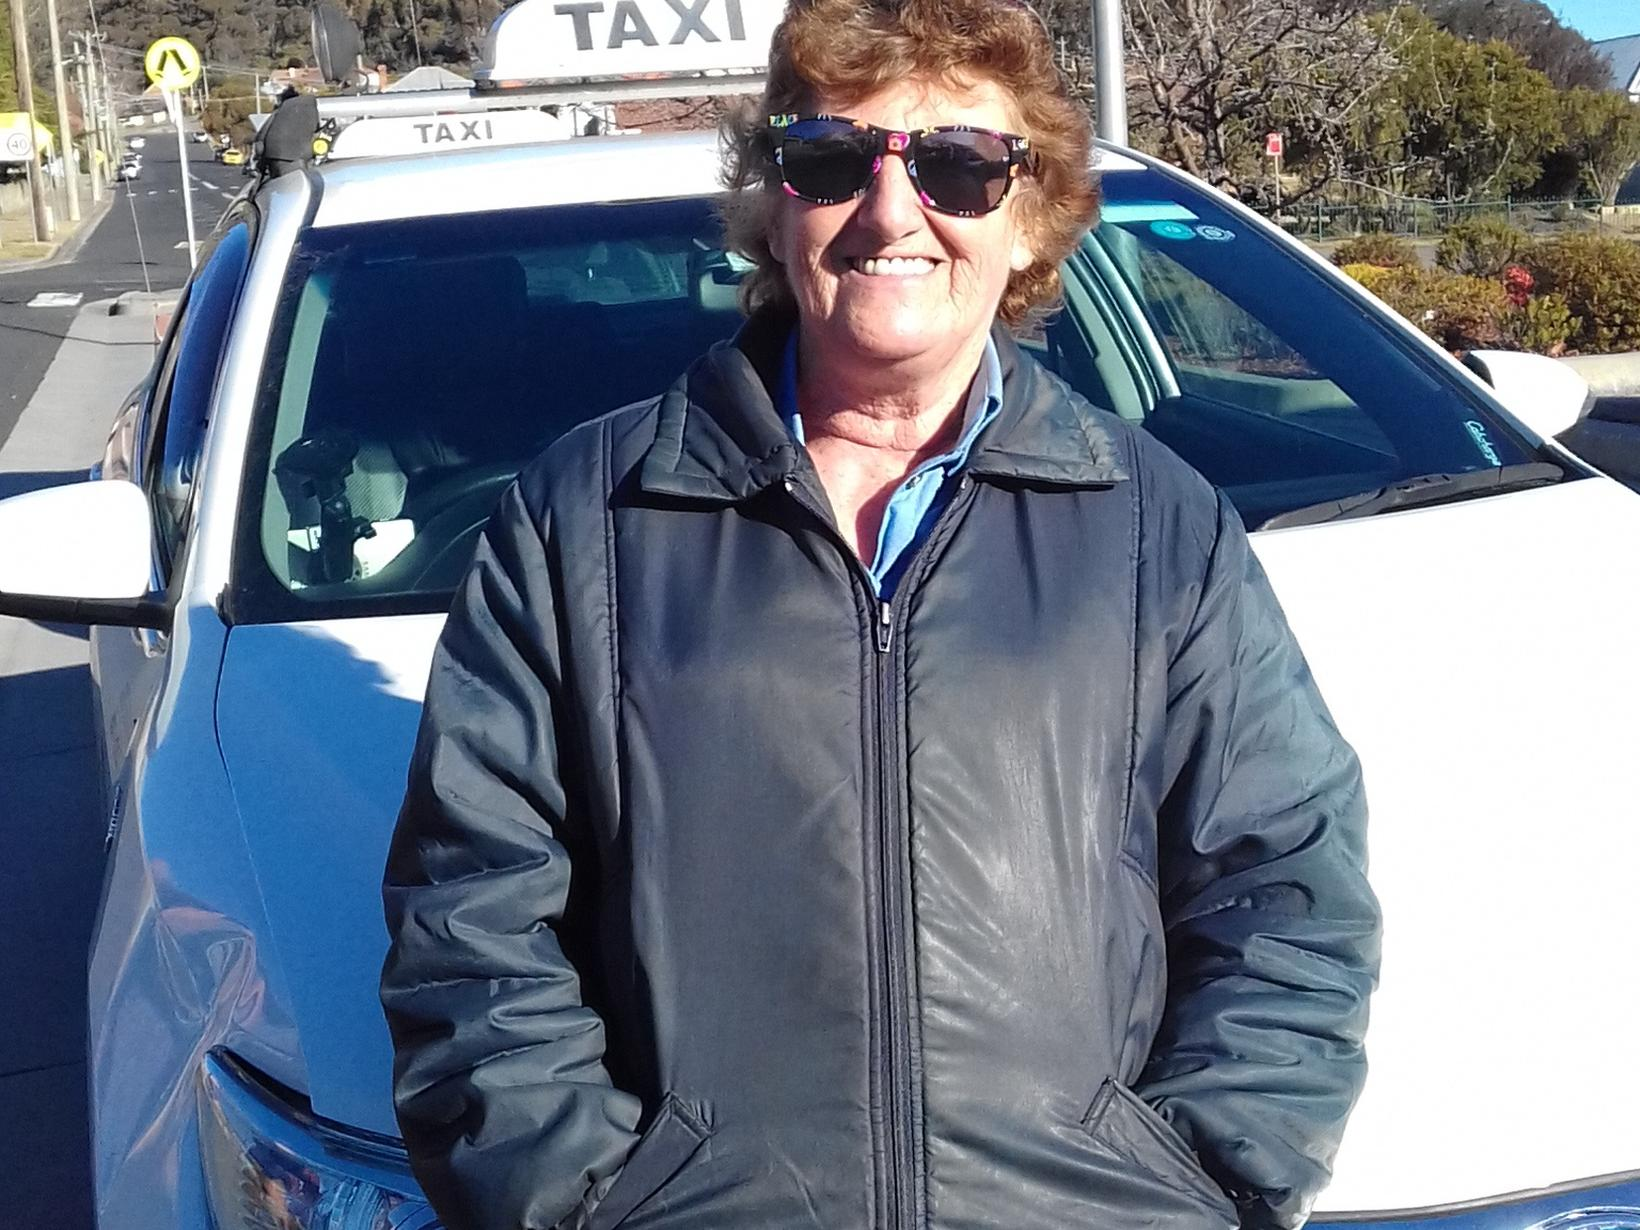 Karen from Lithgow, New South Wales, Australia